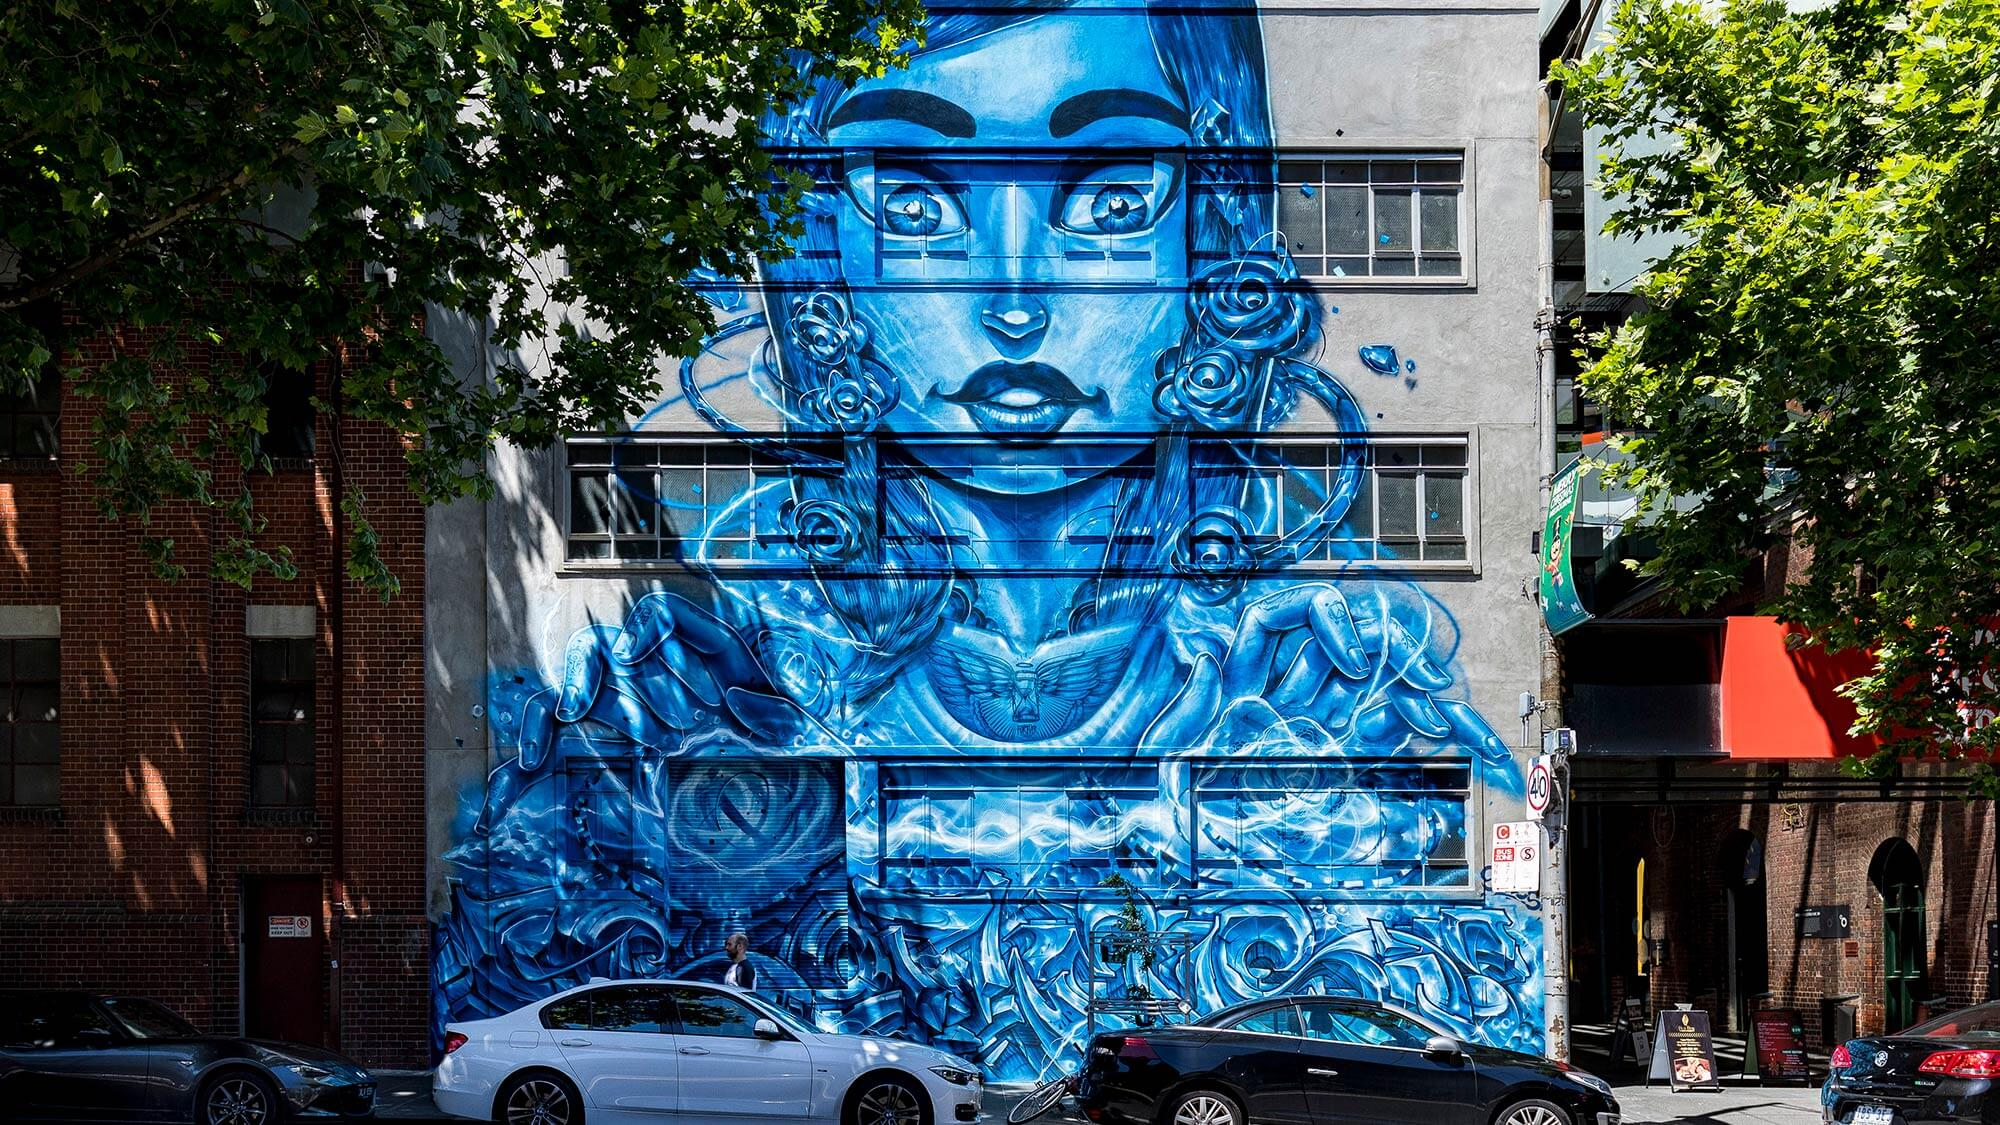 blue street art of woman on building exterior